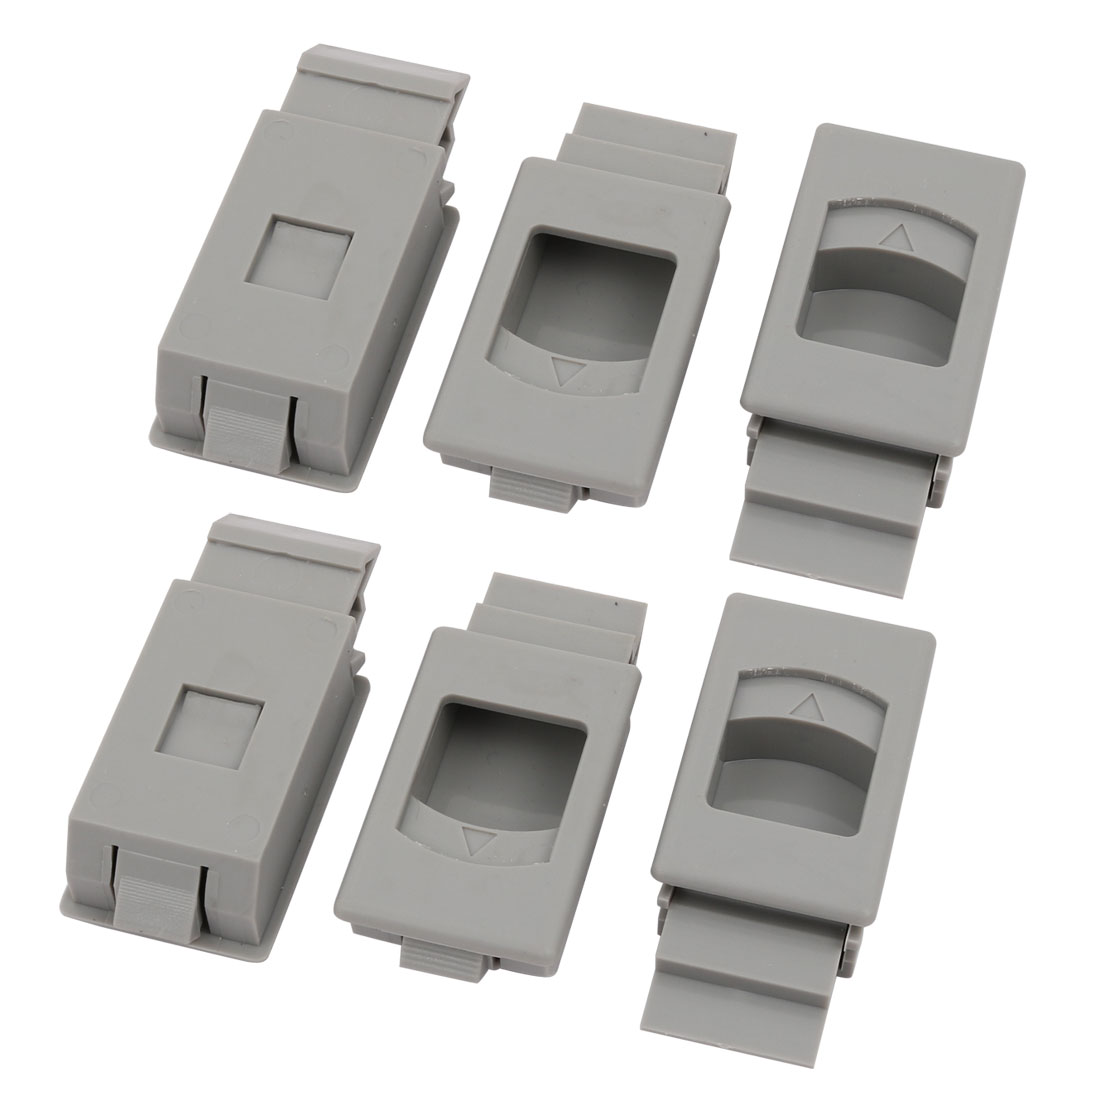 Window Cabinet Plastic Inside Sliding Pull Latch Gray 63x28x15mm 6pcs